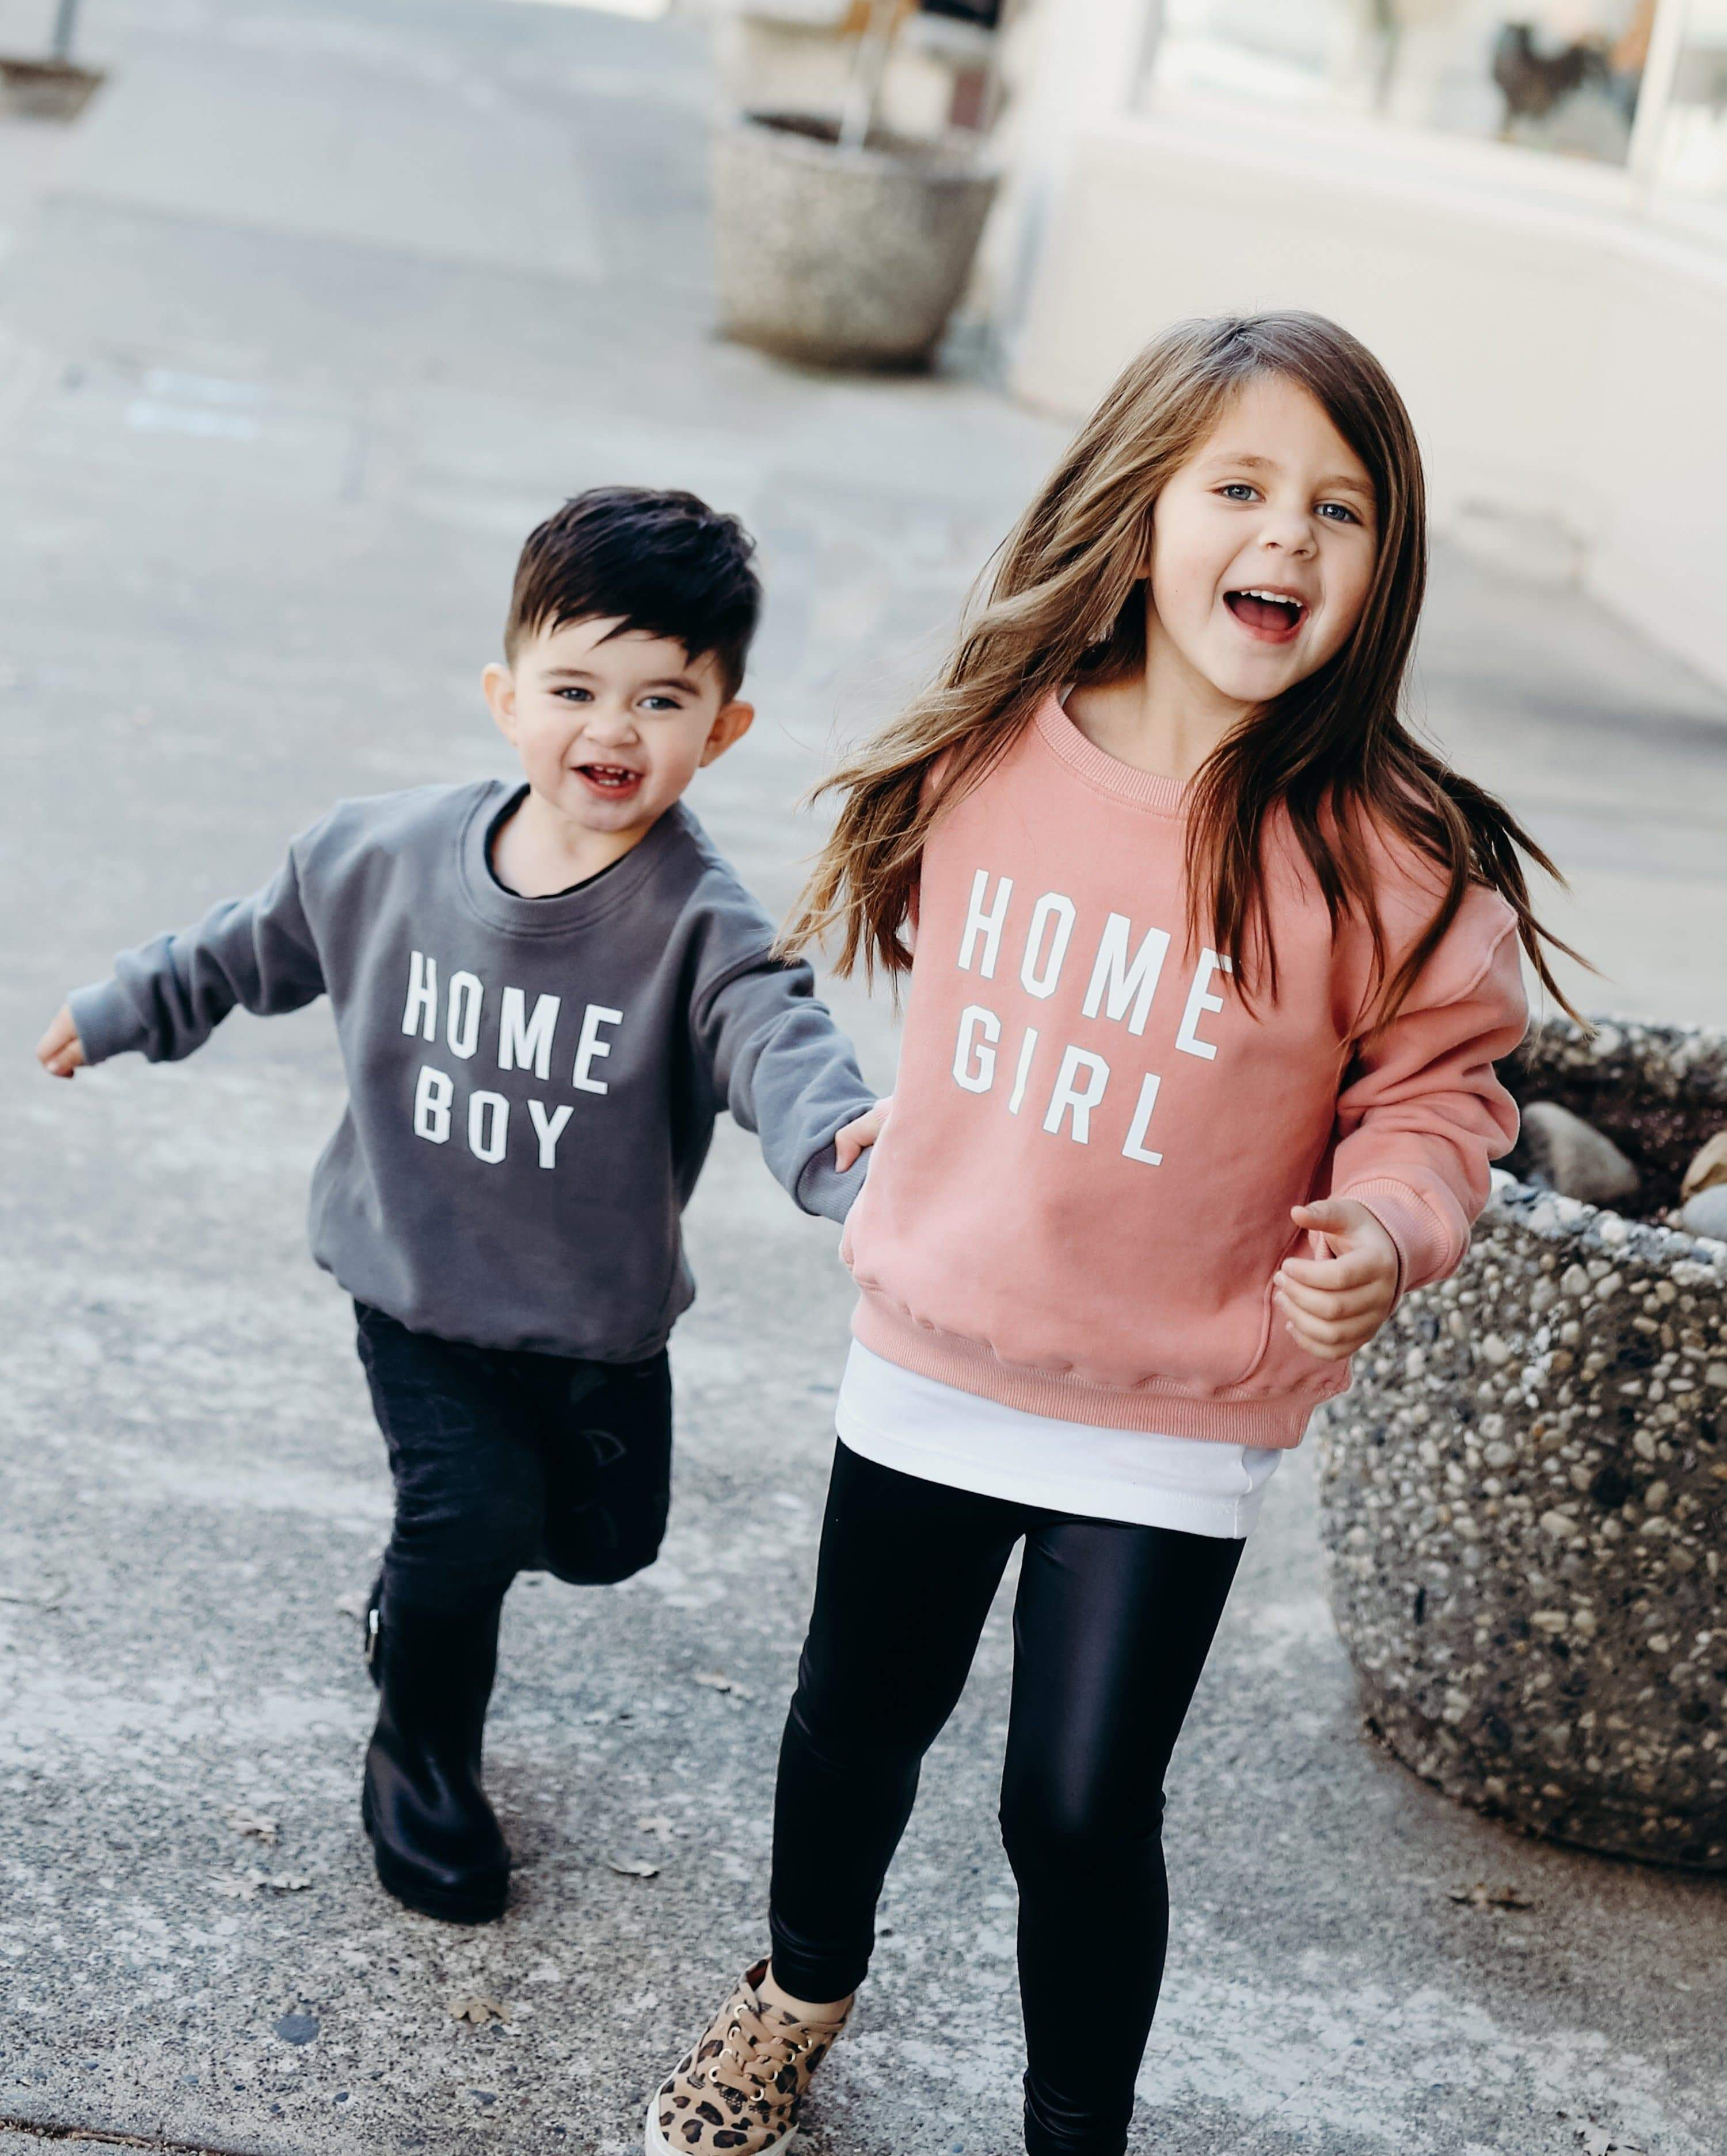 PRESALE LIMITED EDITION - Home Girl And Home Boy Sweatshirts